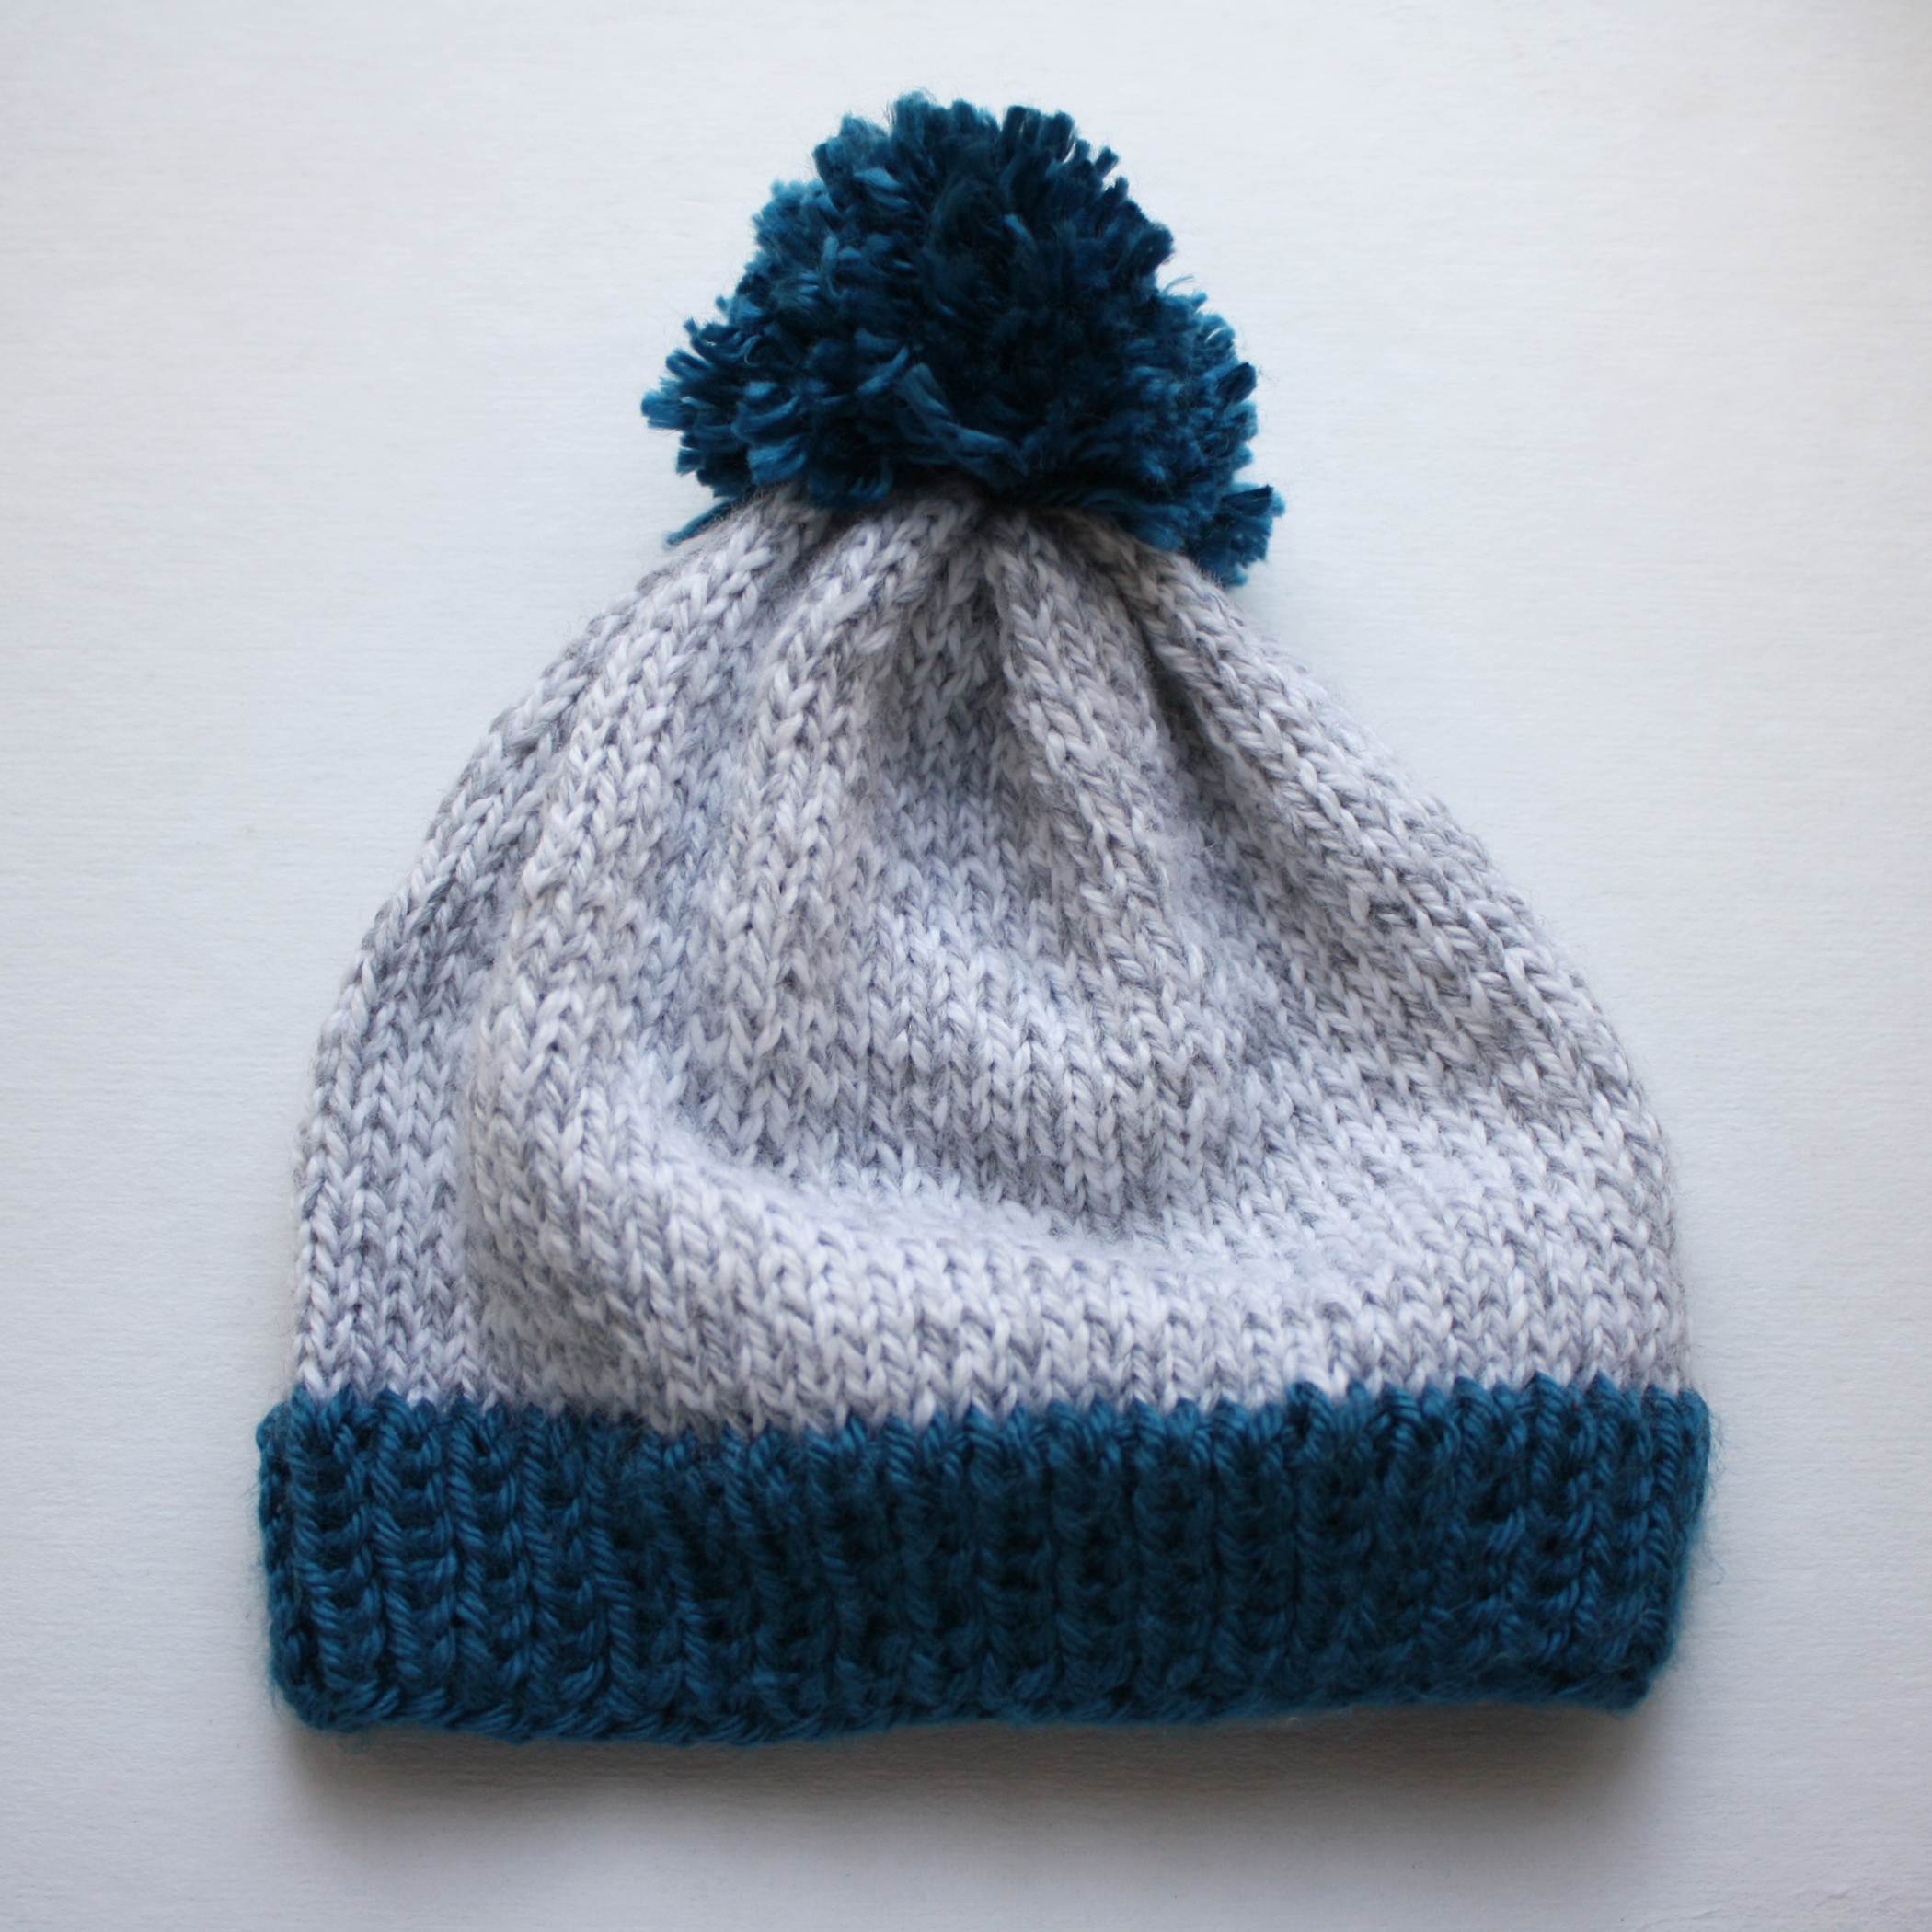 Free Knitting Pattern - Big Pom Baby Beanie